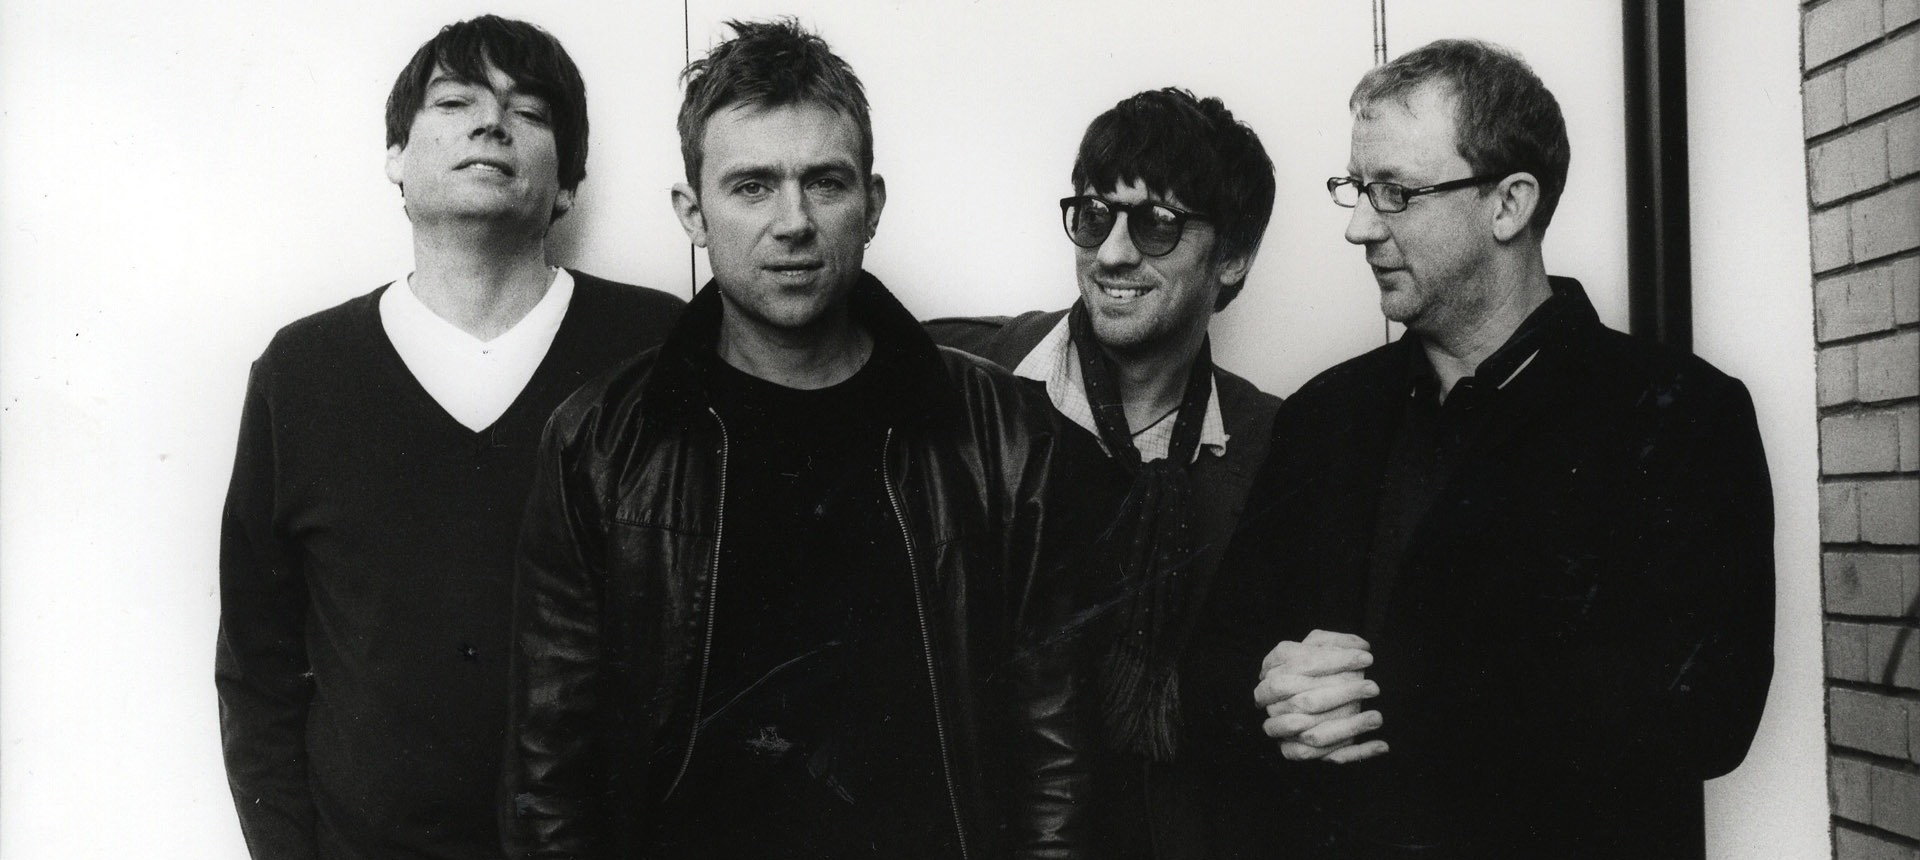 Album of the Day: Blur – The Magic Whip